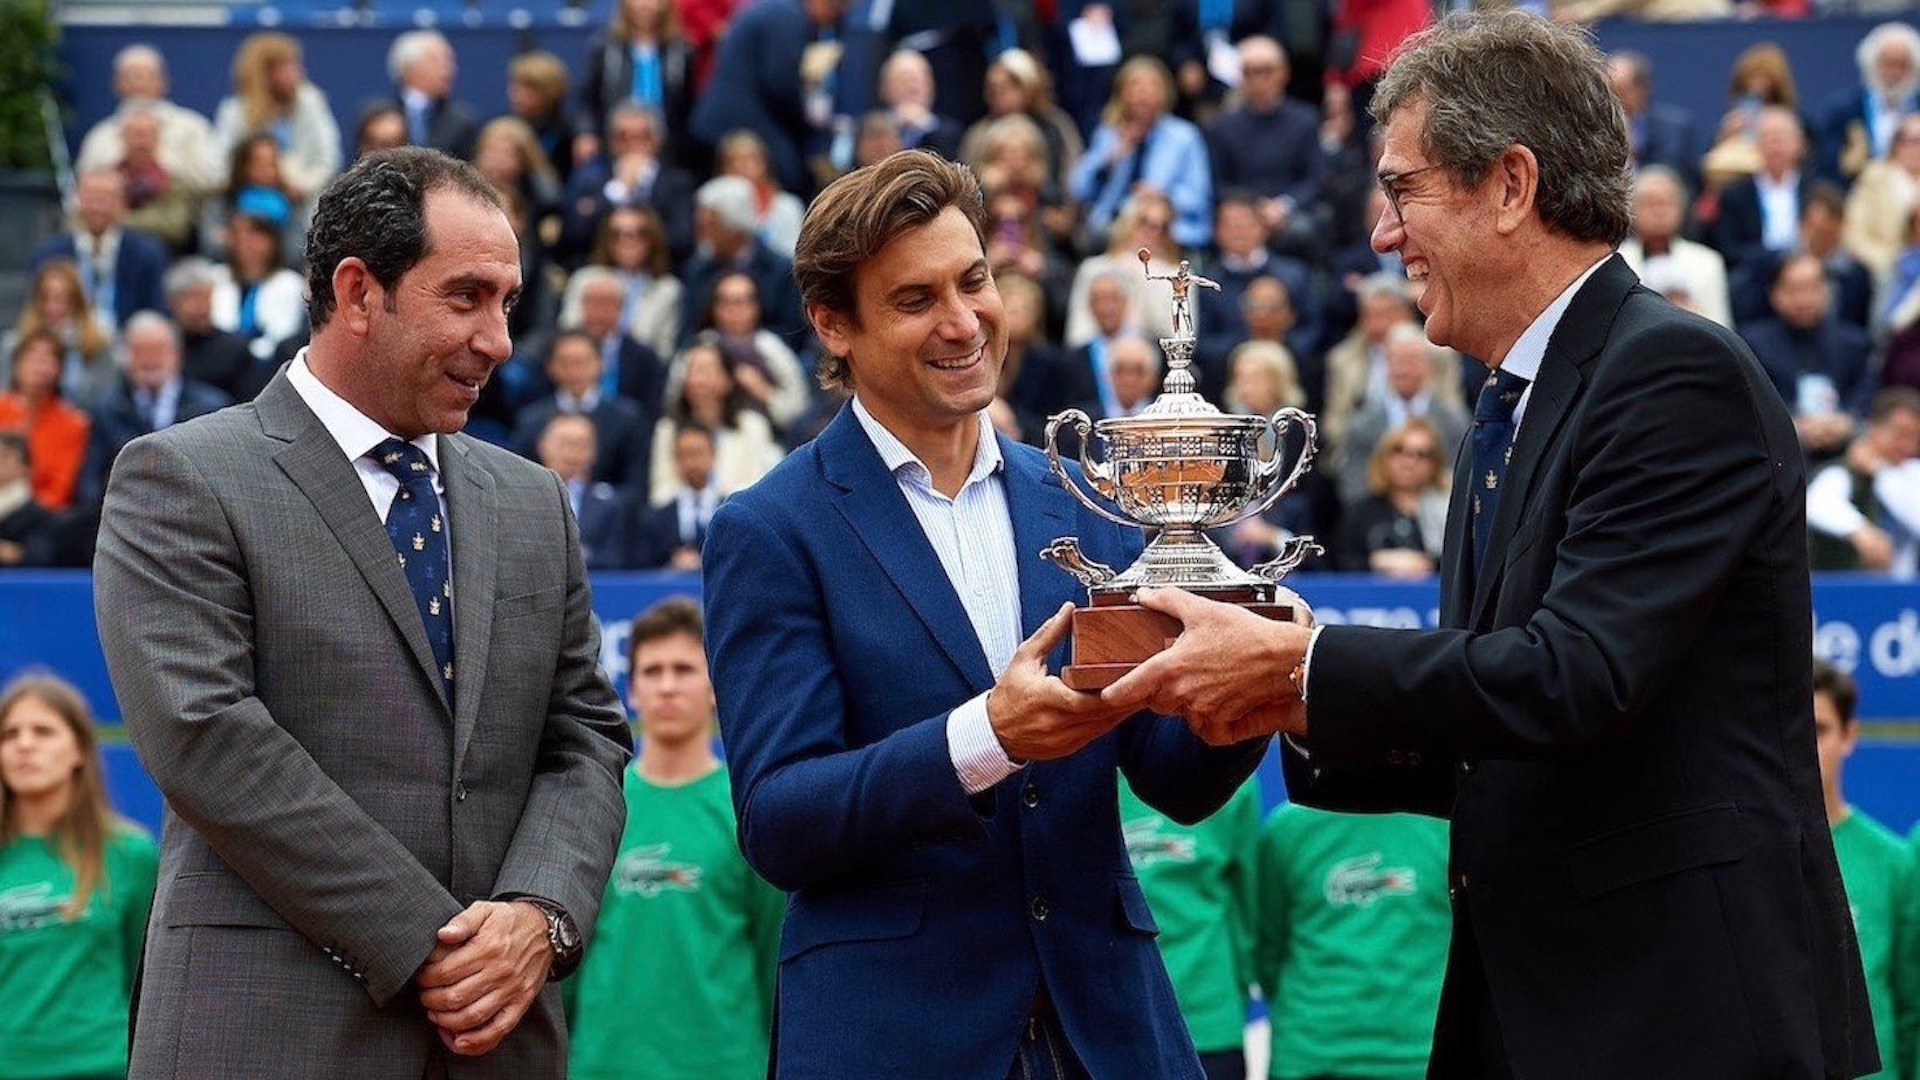 David Ferrer will become the new Barcelona Tournament Director.